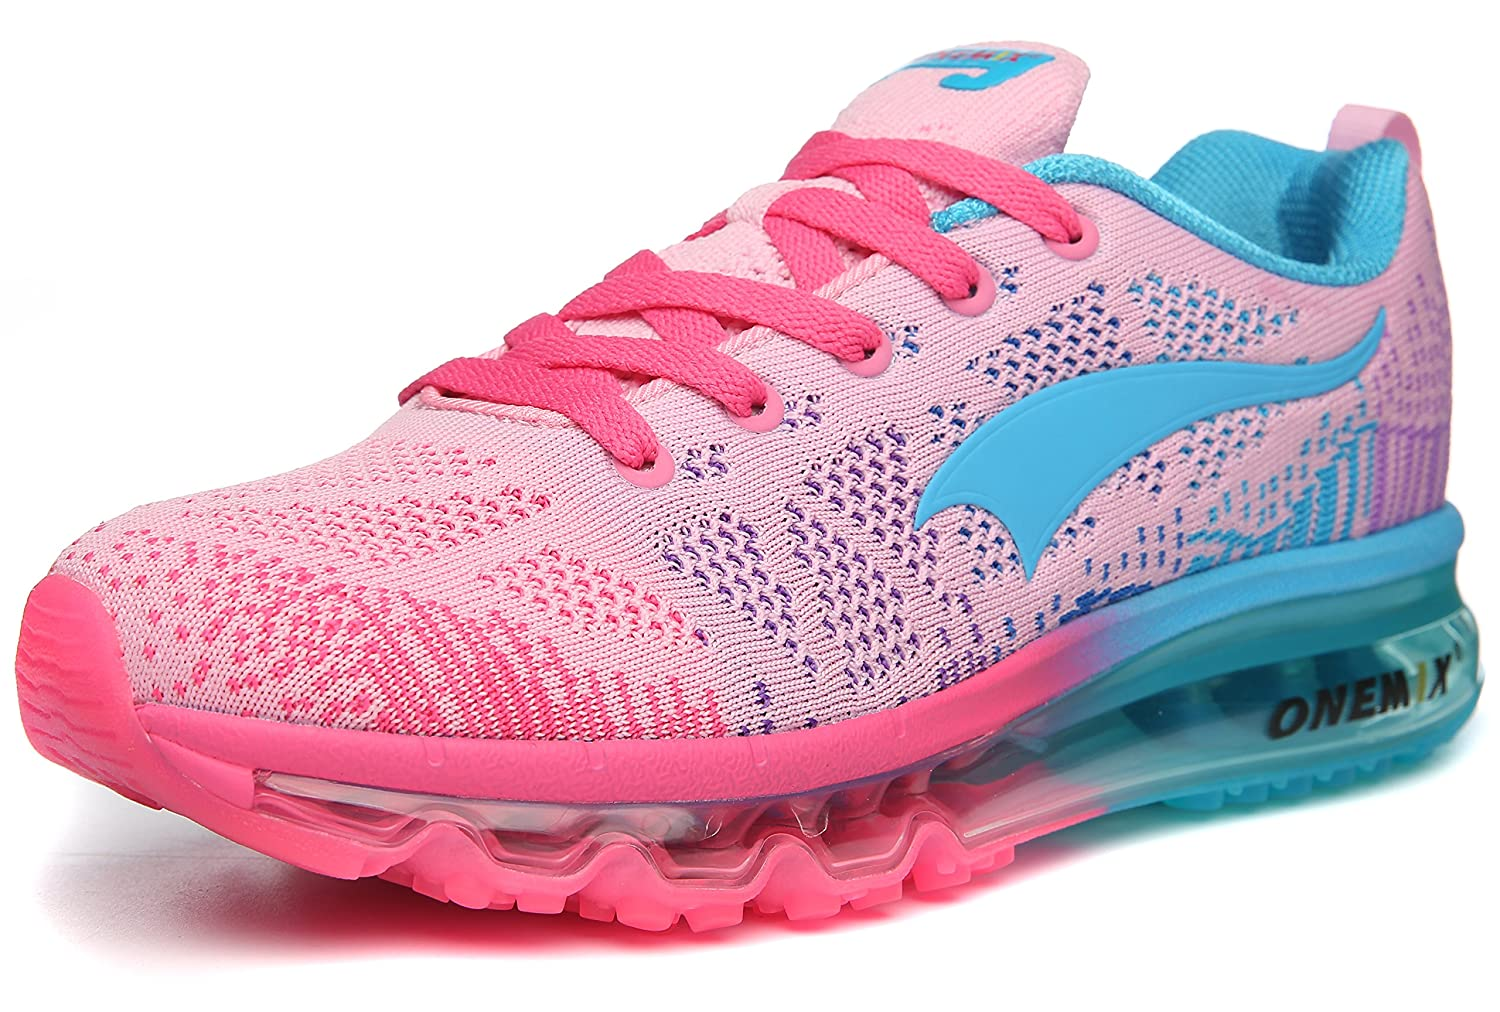 ONEMIX Womens Air Cushion Outdoor Sport Running Shoes Lightweight Casual Sneakers B0788MMV8C Men 5.5(M)US 38EU/Women 7(M)US 38EUR|Pink/Blue